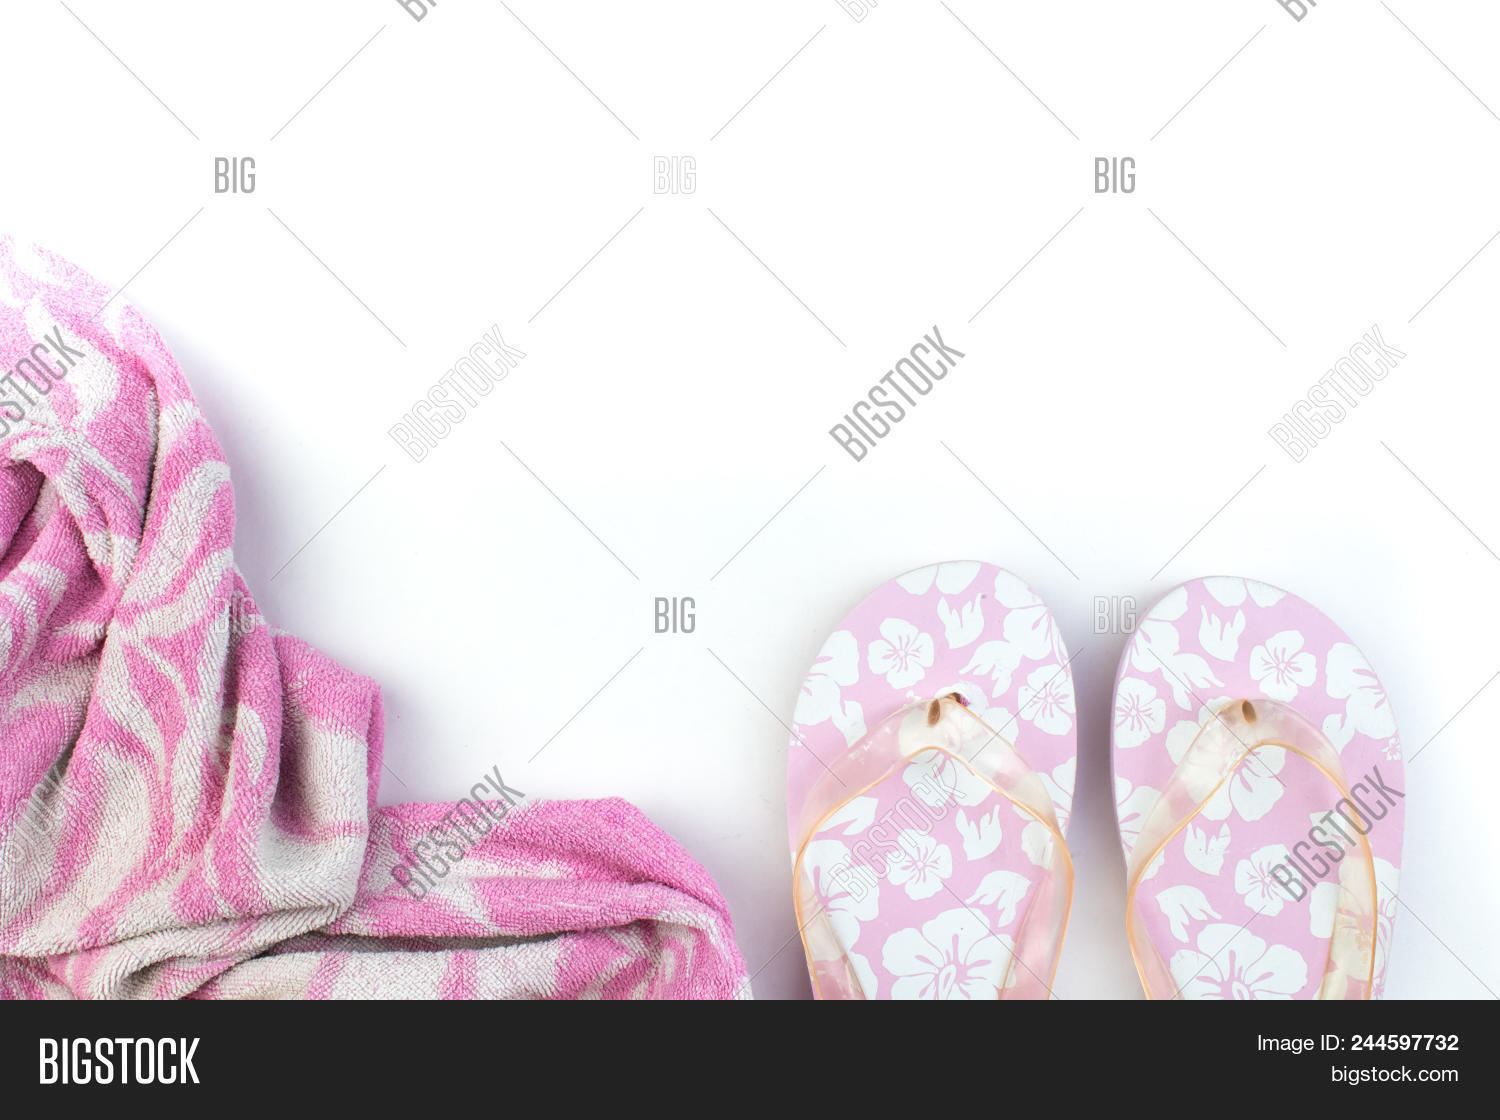 497b35c7b0f0 Pink With White Flowers Flip Flop Sandals Beach Shoes